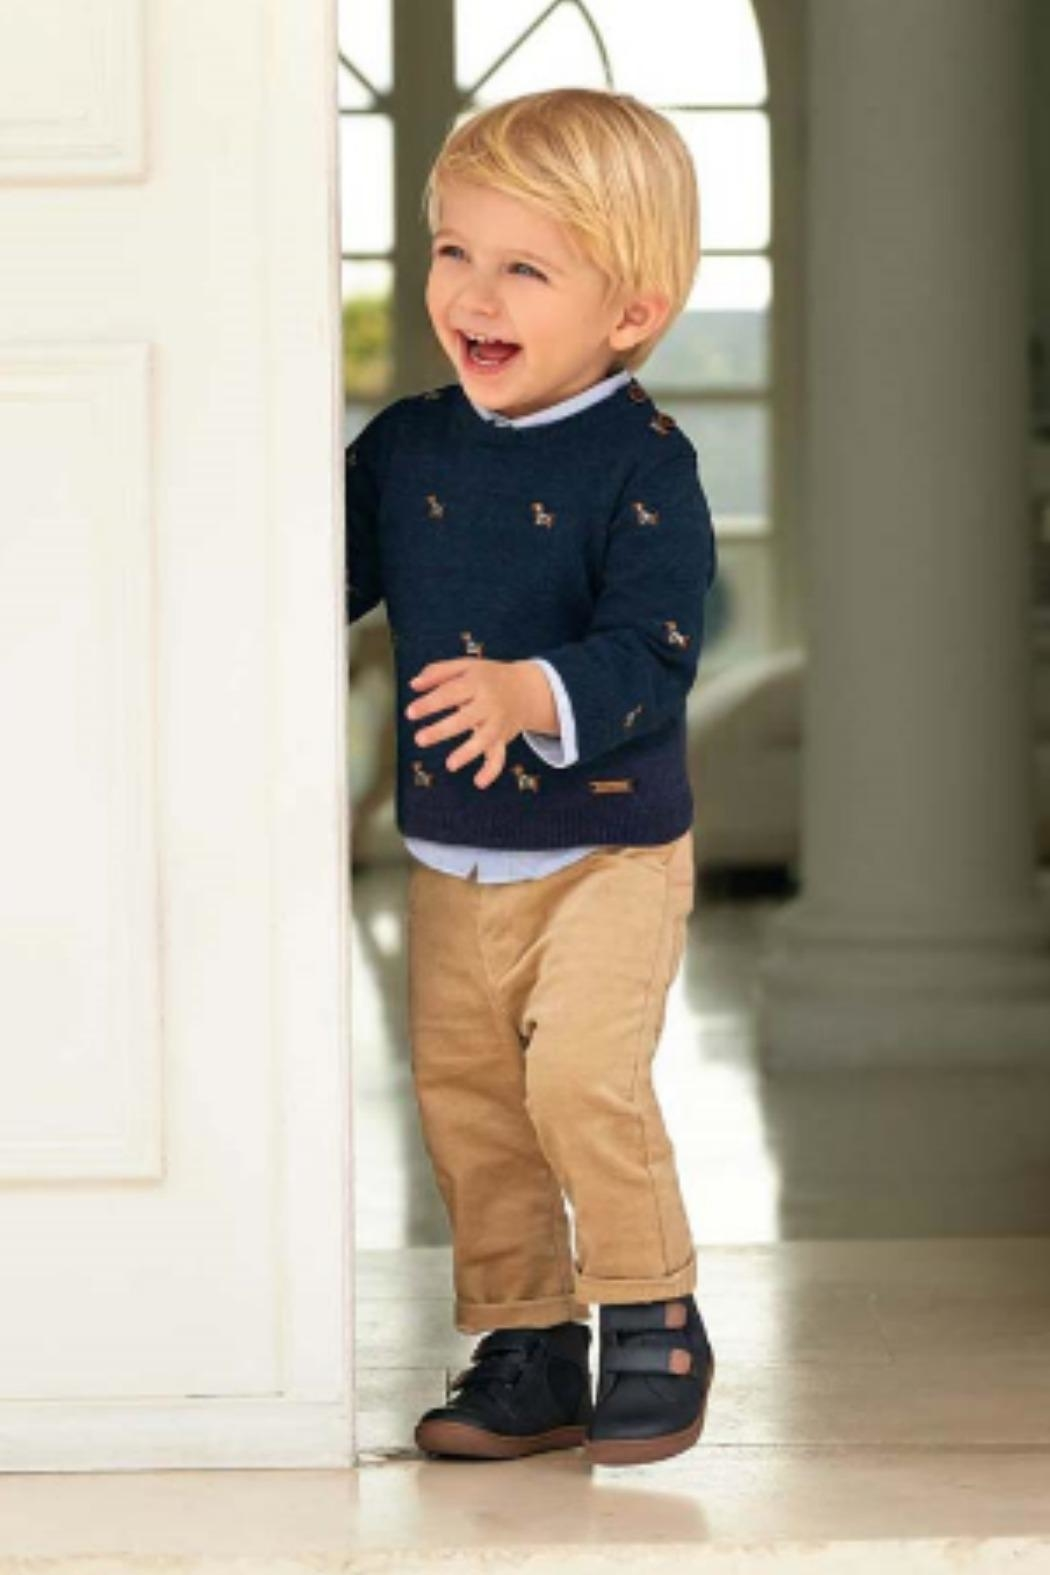 58ebeab738d Mayoral Baby-Boy Dachshund Sweater-Set from South Carolina by The ...